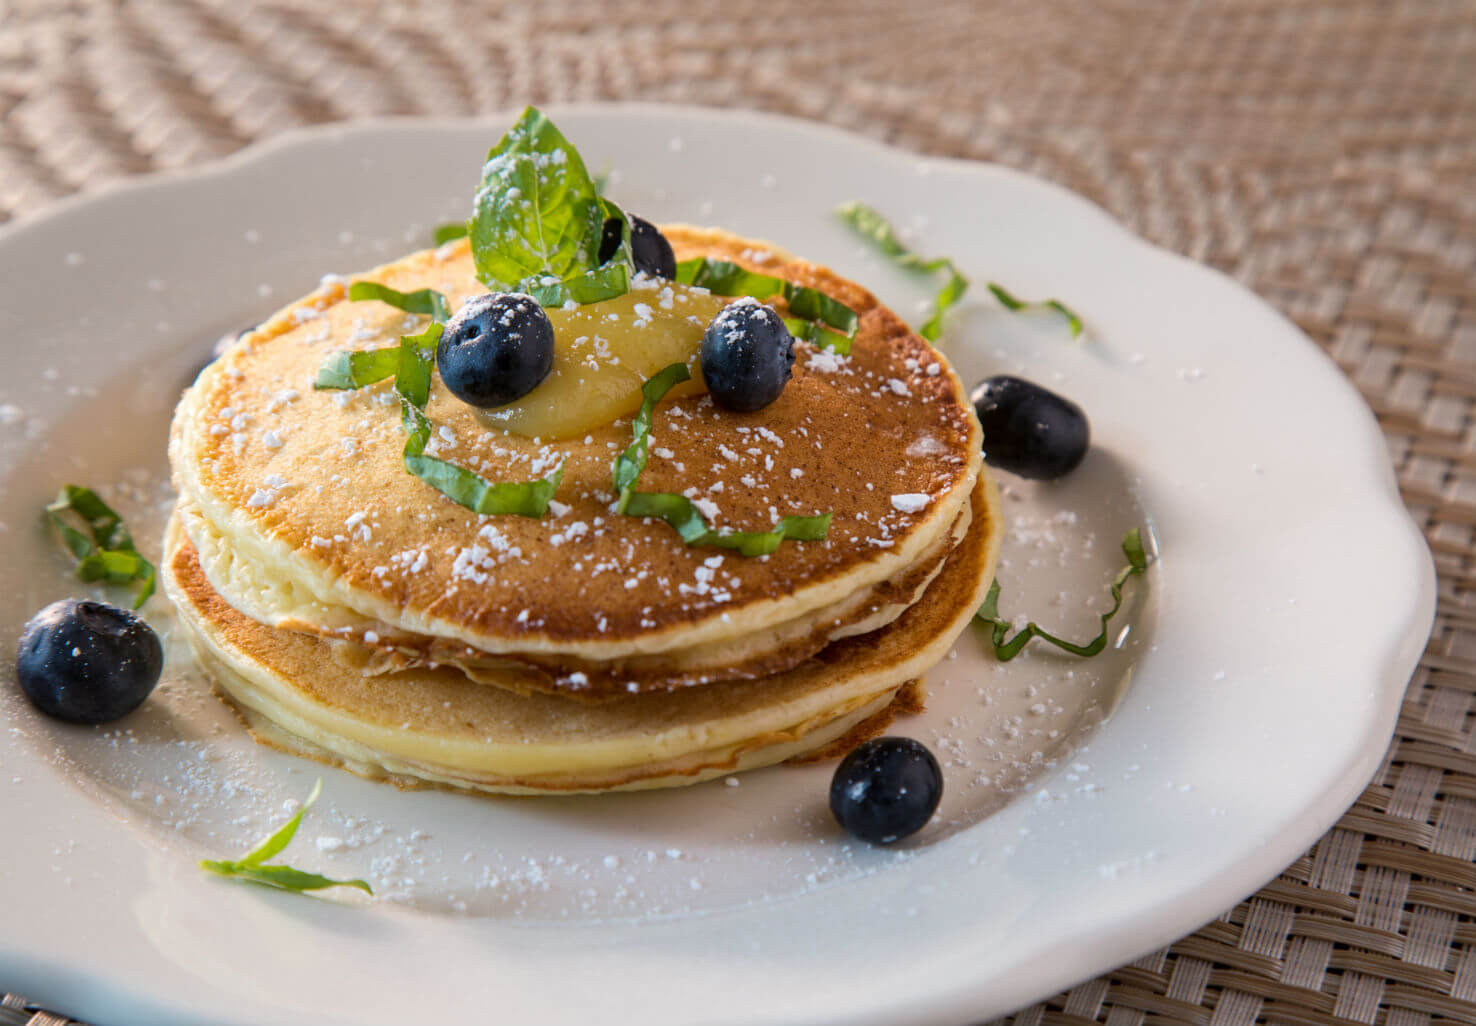 Plate of fresh pancakes with powdered sugar, herbs and blueberries